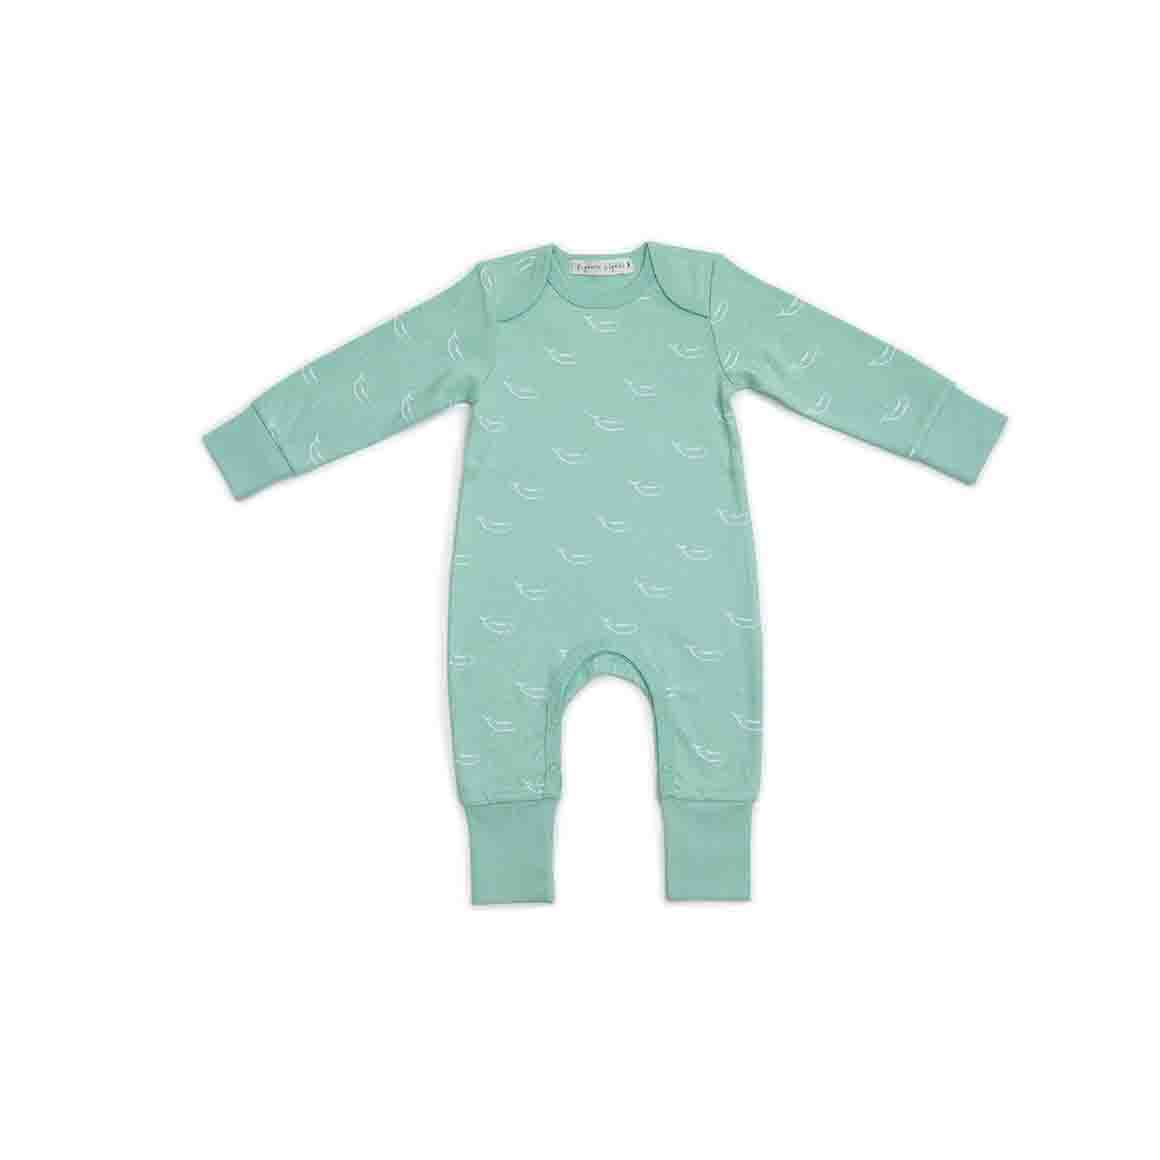 Baby Sleepsuit - Long Arm/Long Leg (Sage Green In Tiny Whales Print)   Trada Marketplace